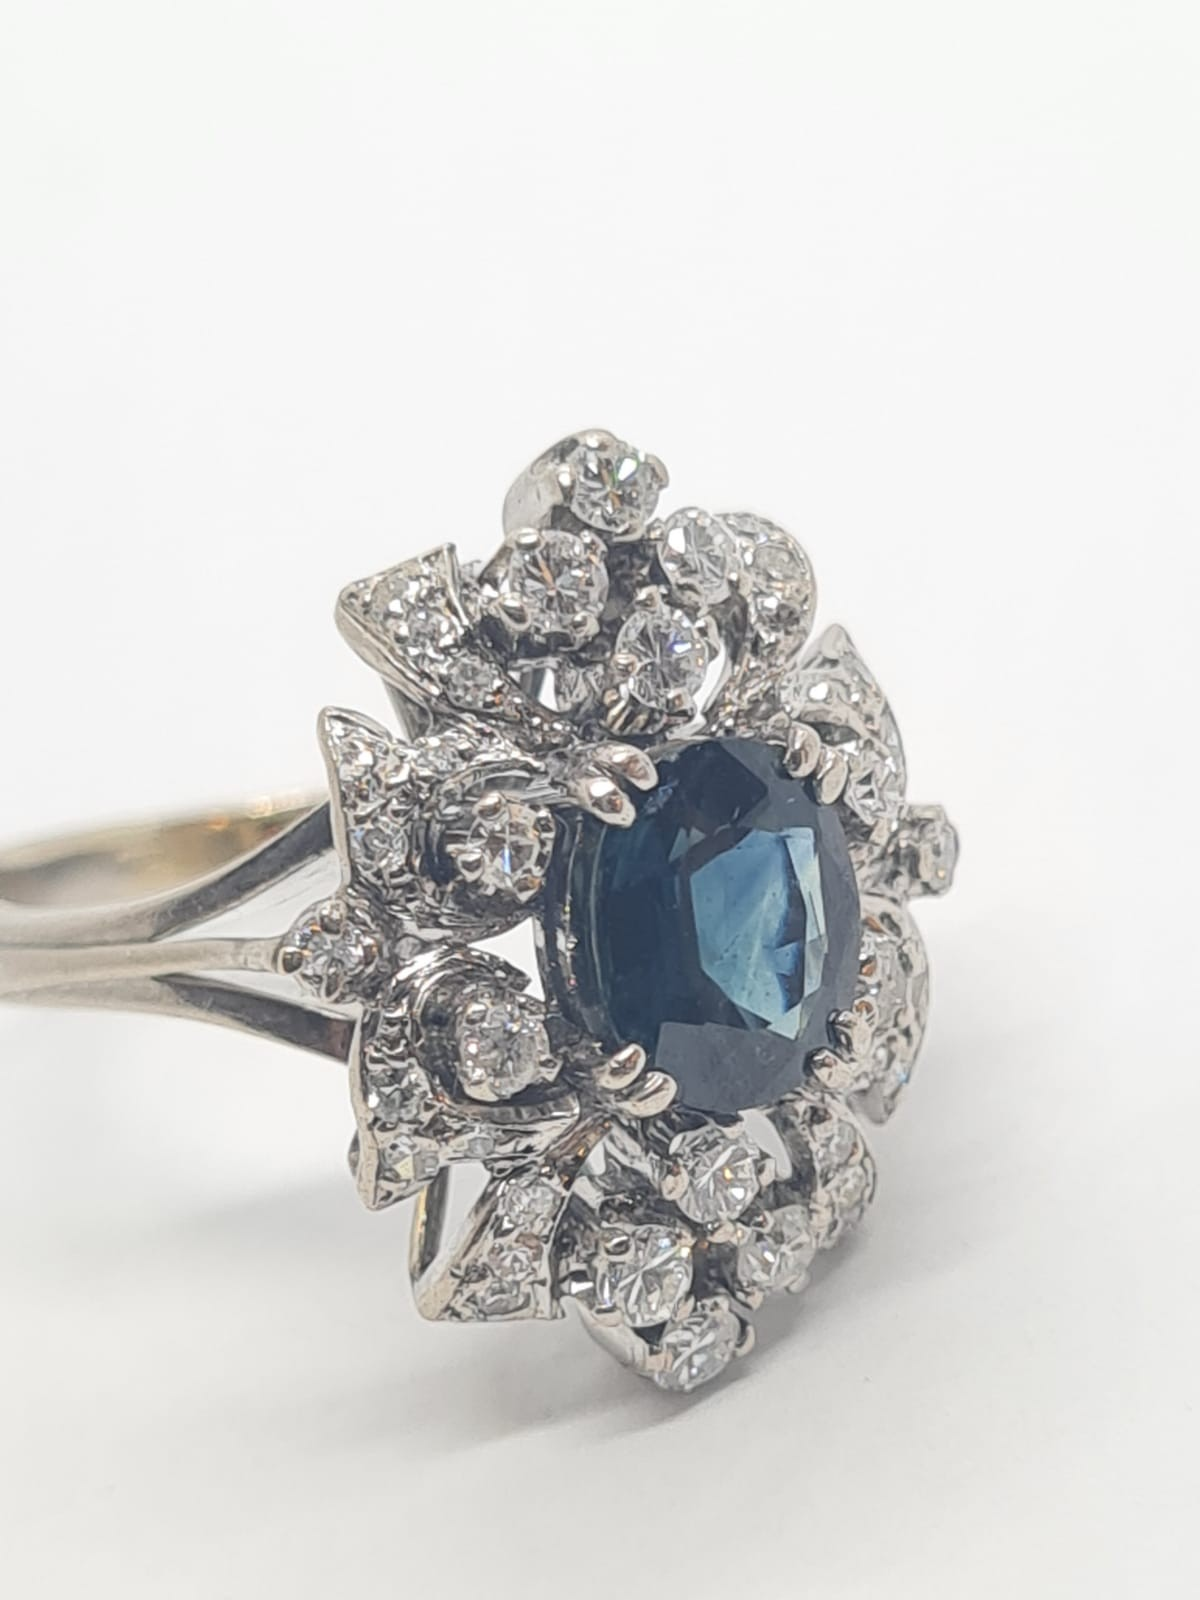 14k white gold diamond cluster ring with sapphire centre marked Tiffany & Co , weight 6.2g and - Image 2 of 7